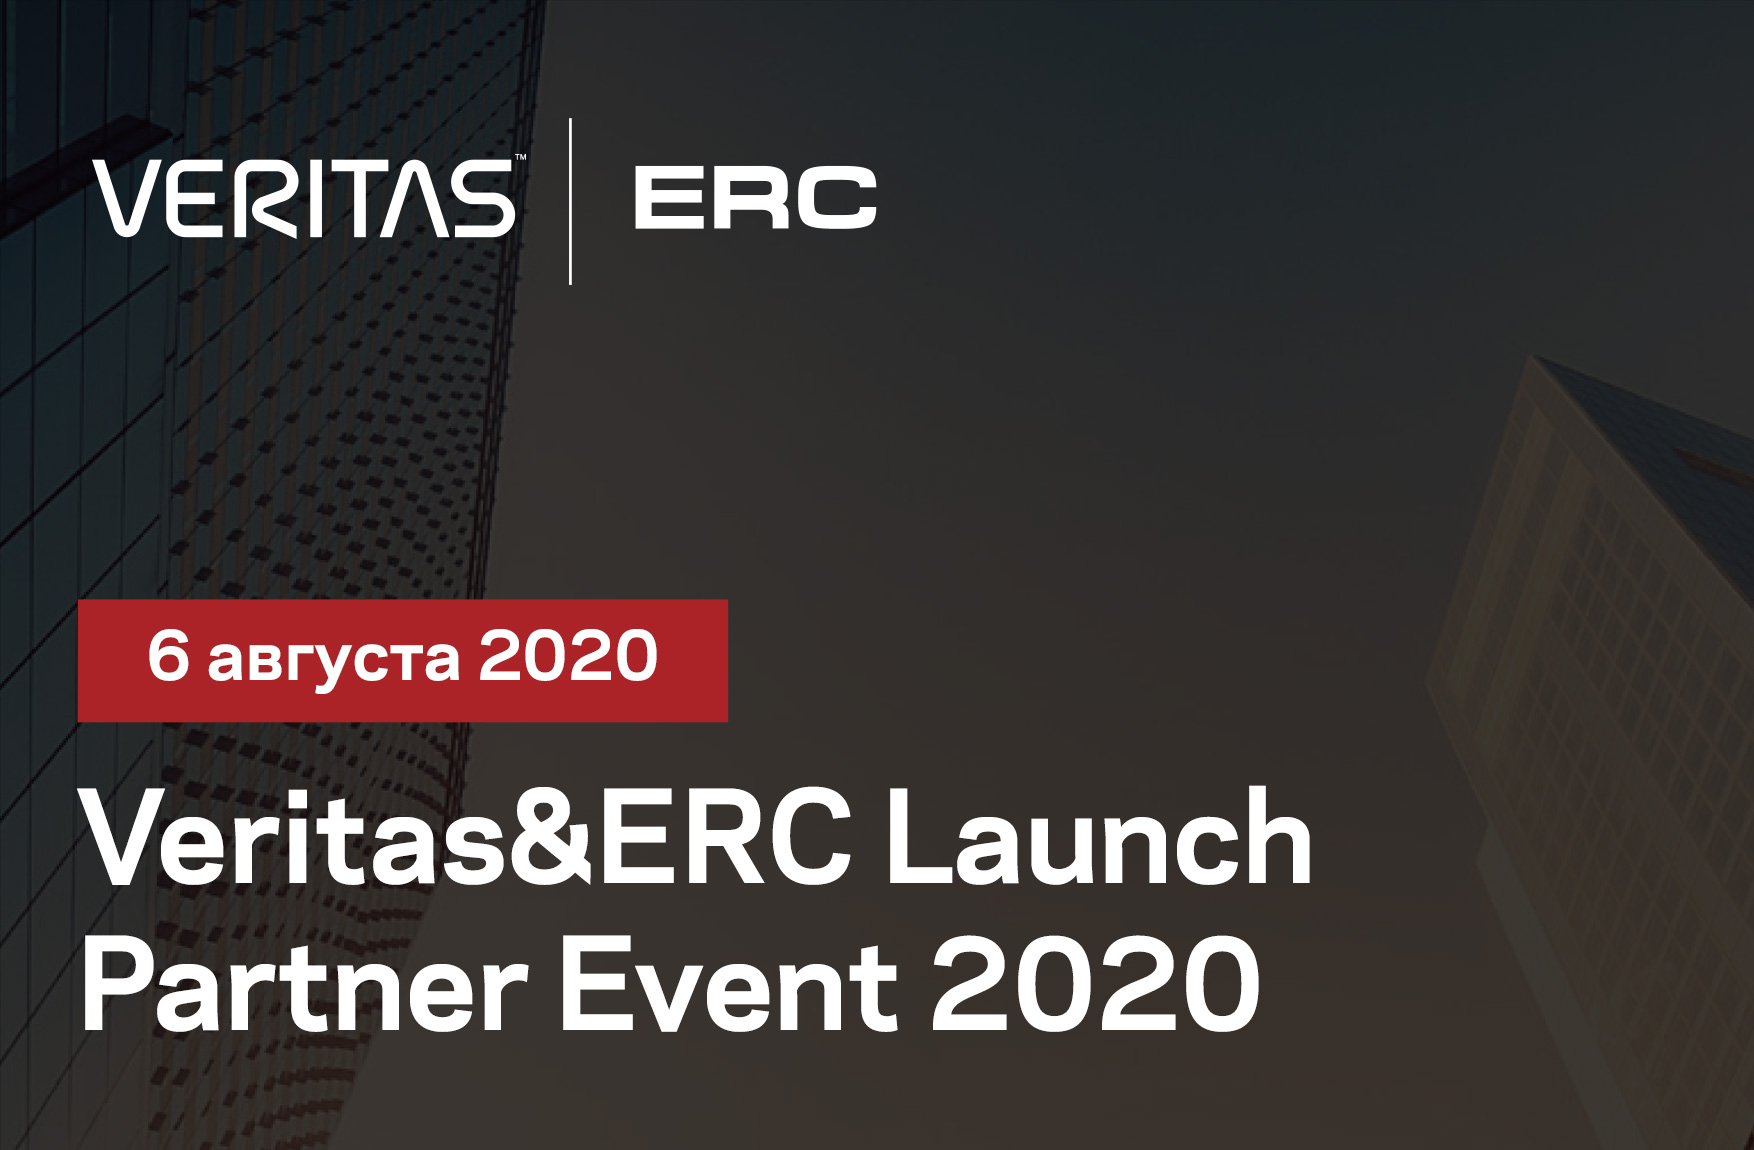 Veritas & ERC Launch Partner Event 2020